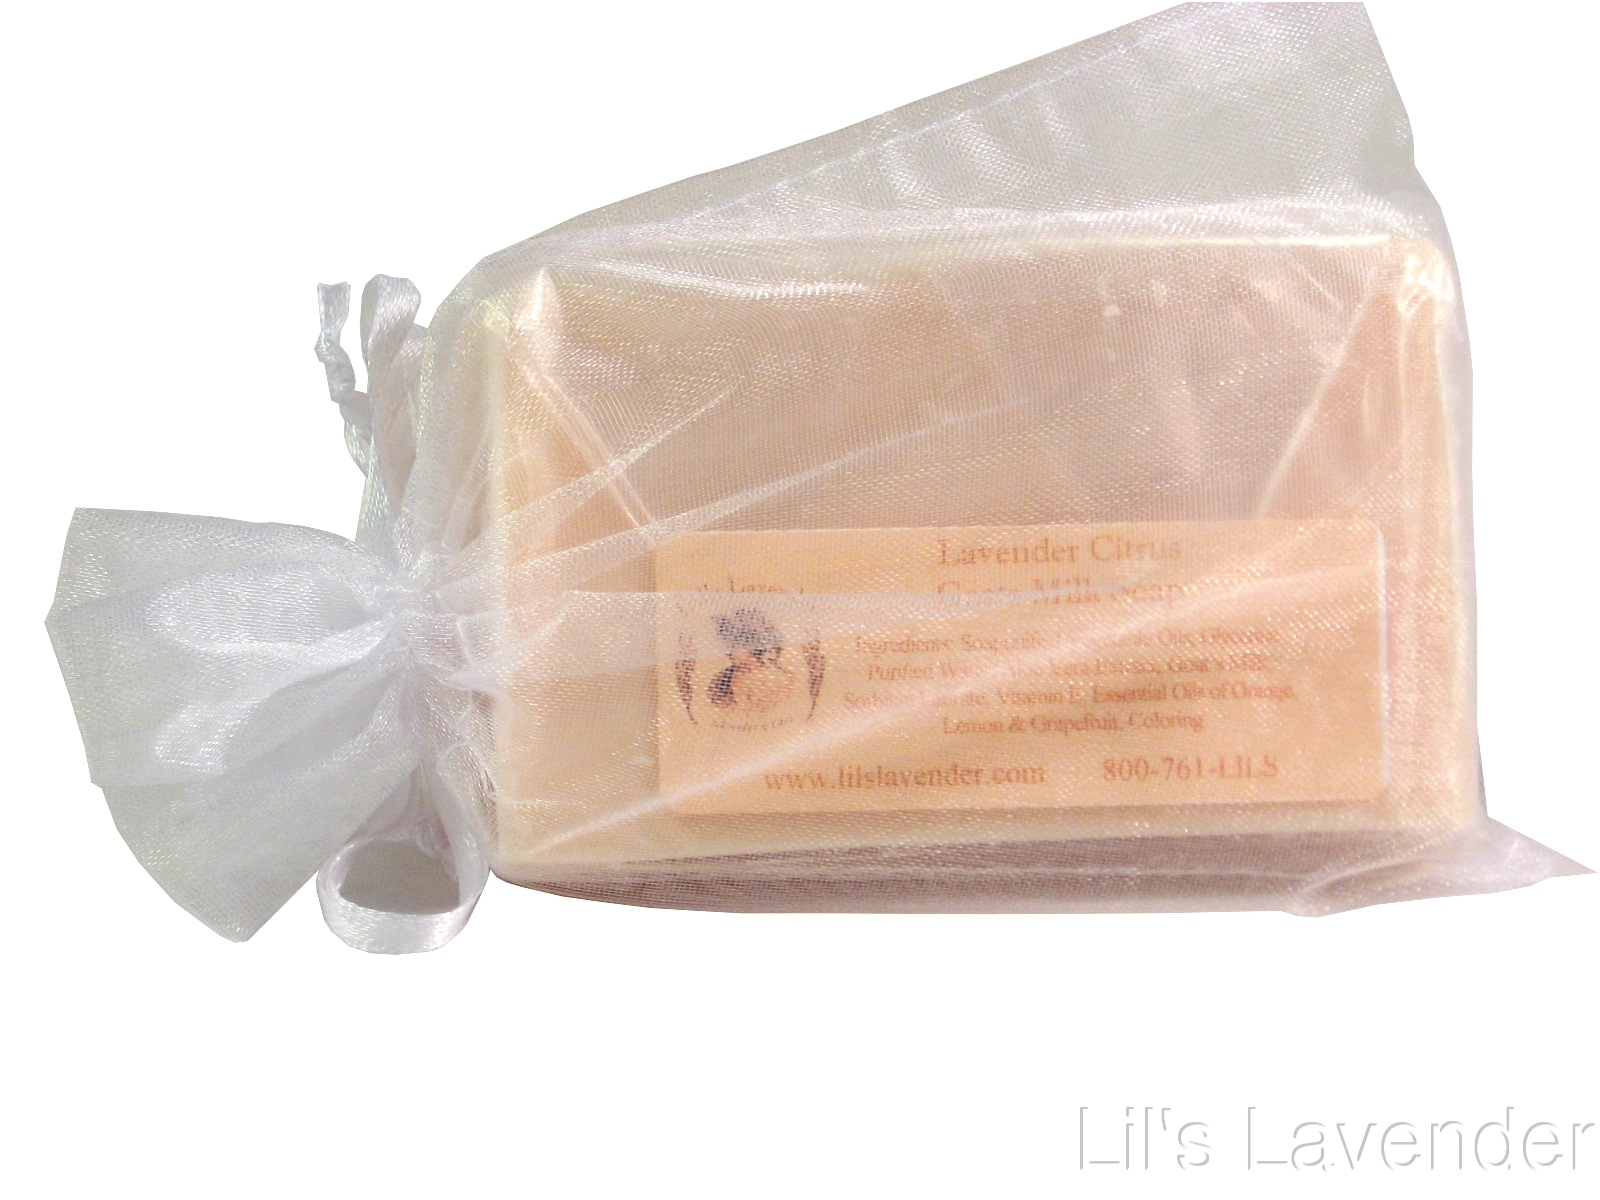 Lavender Citrus Goat's Milk Soap